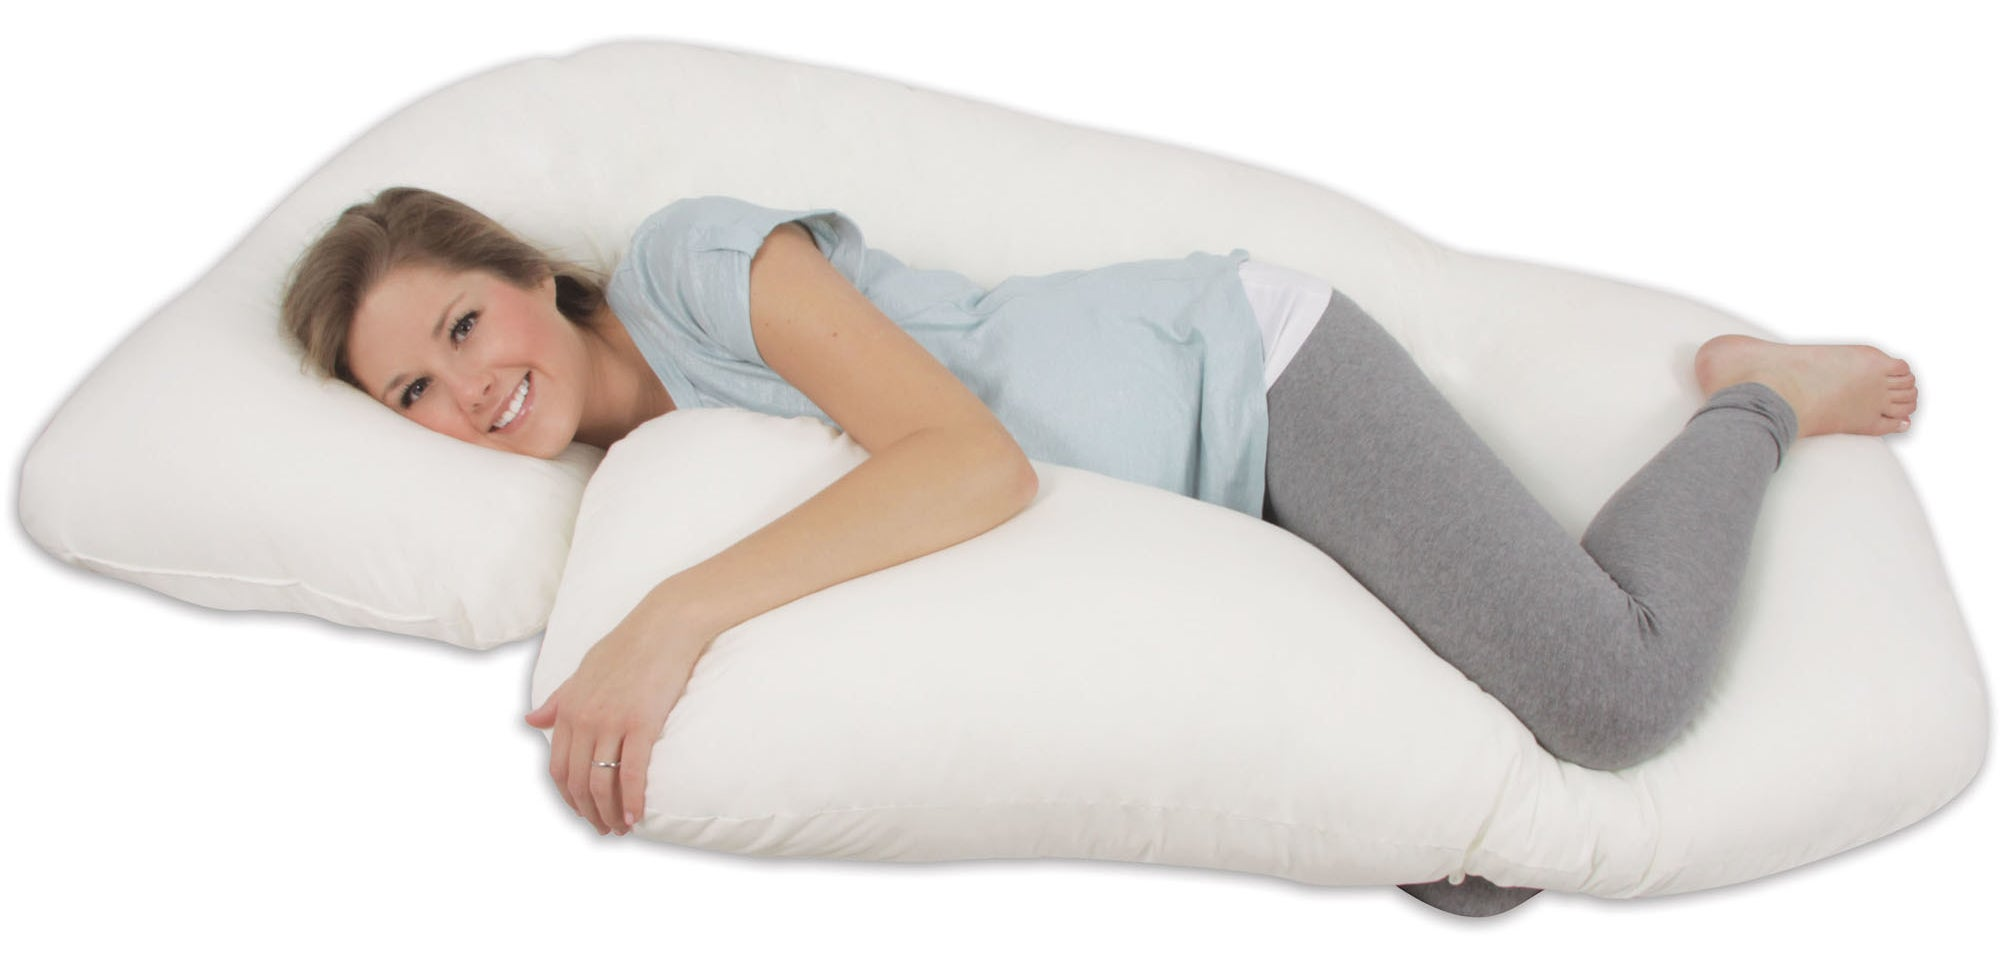 Model spooning the body pillow